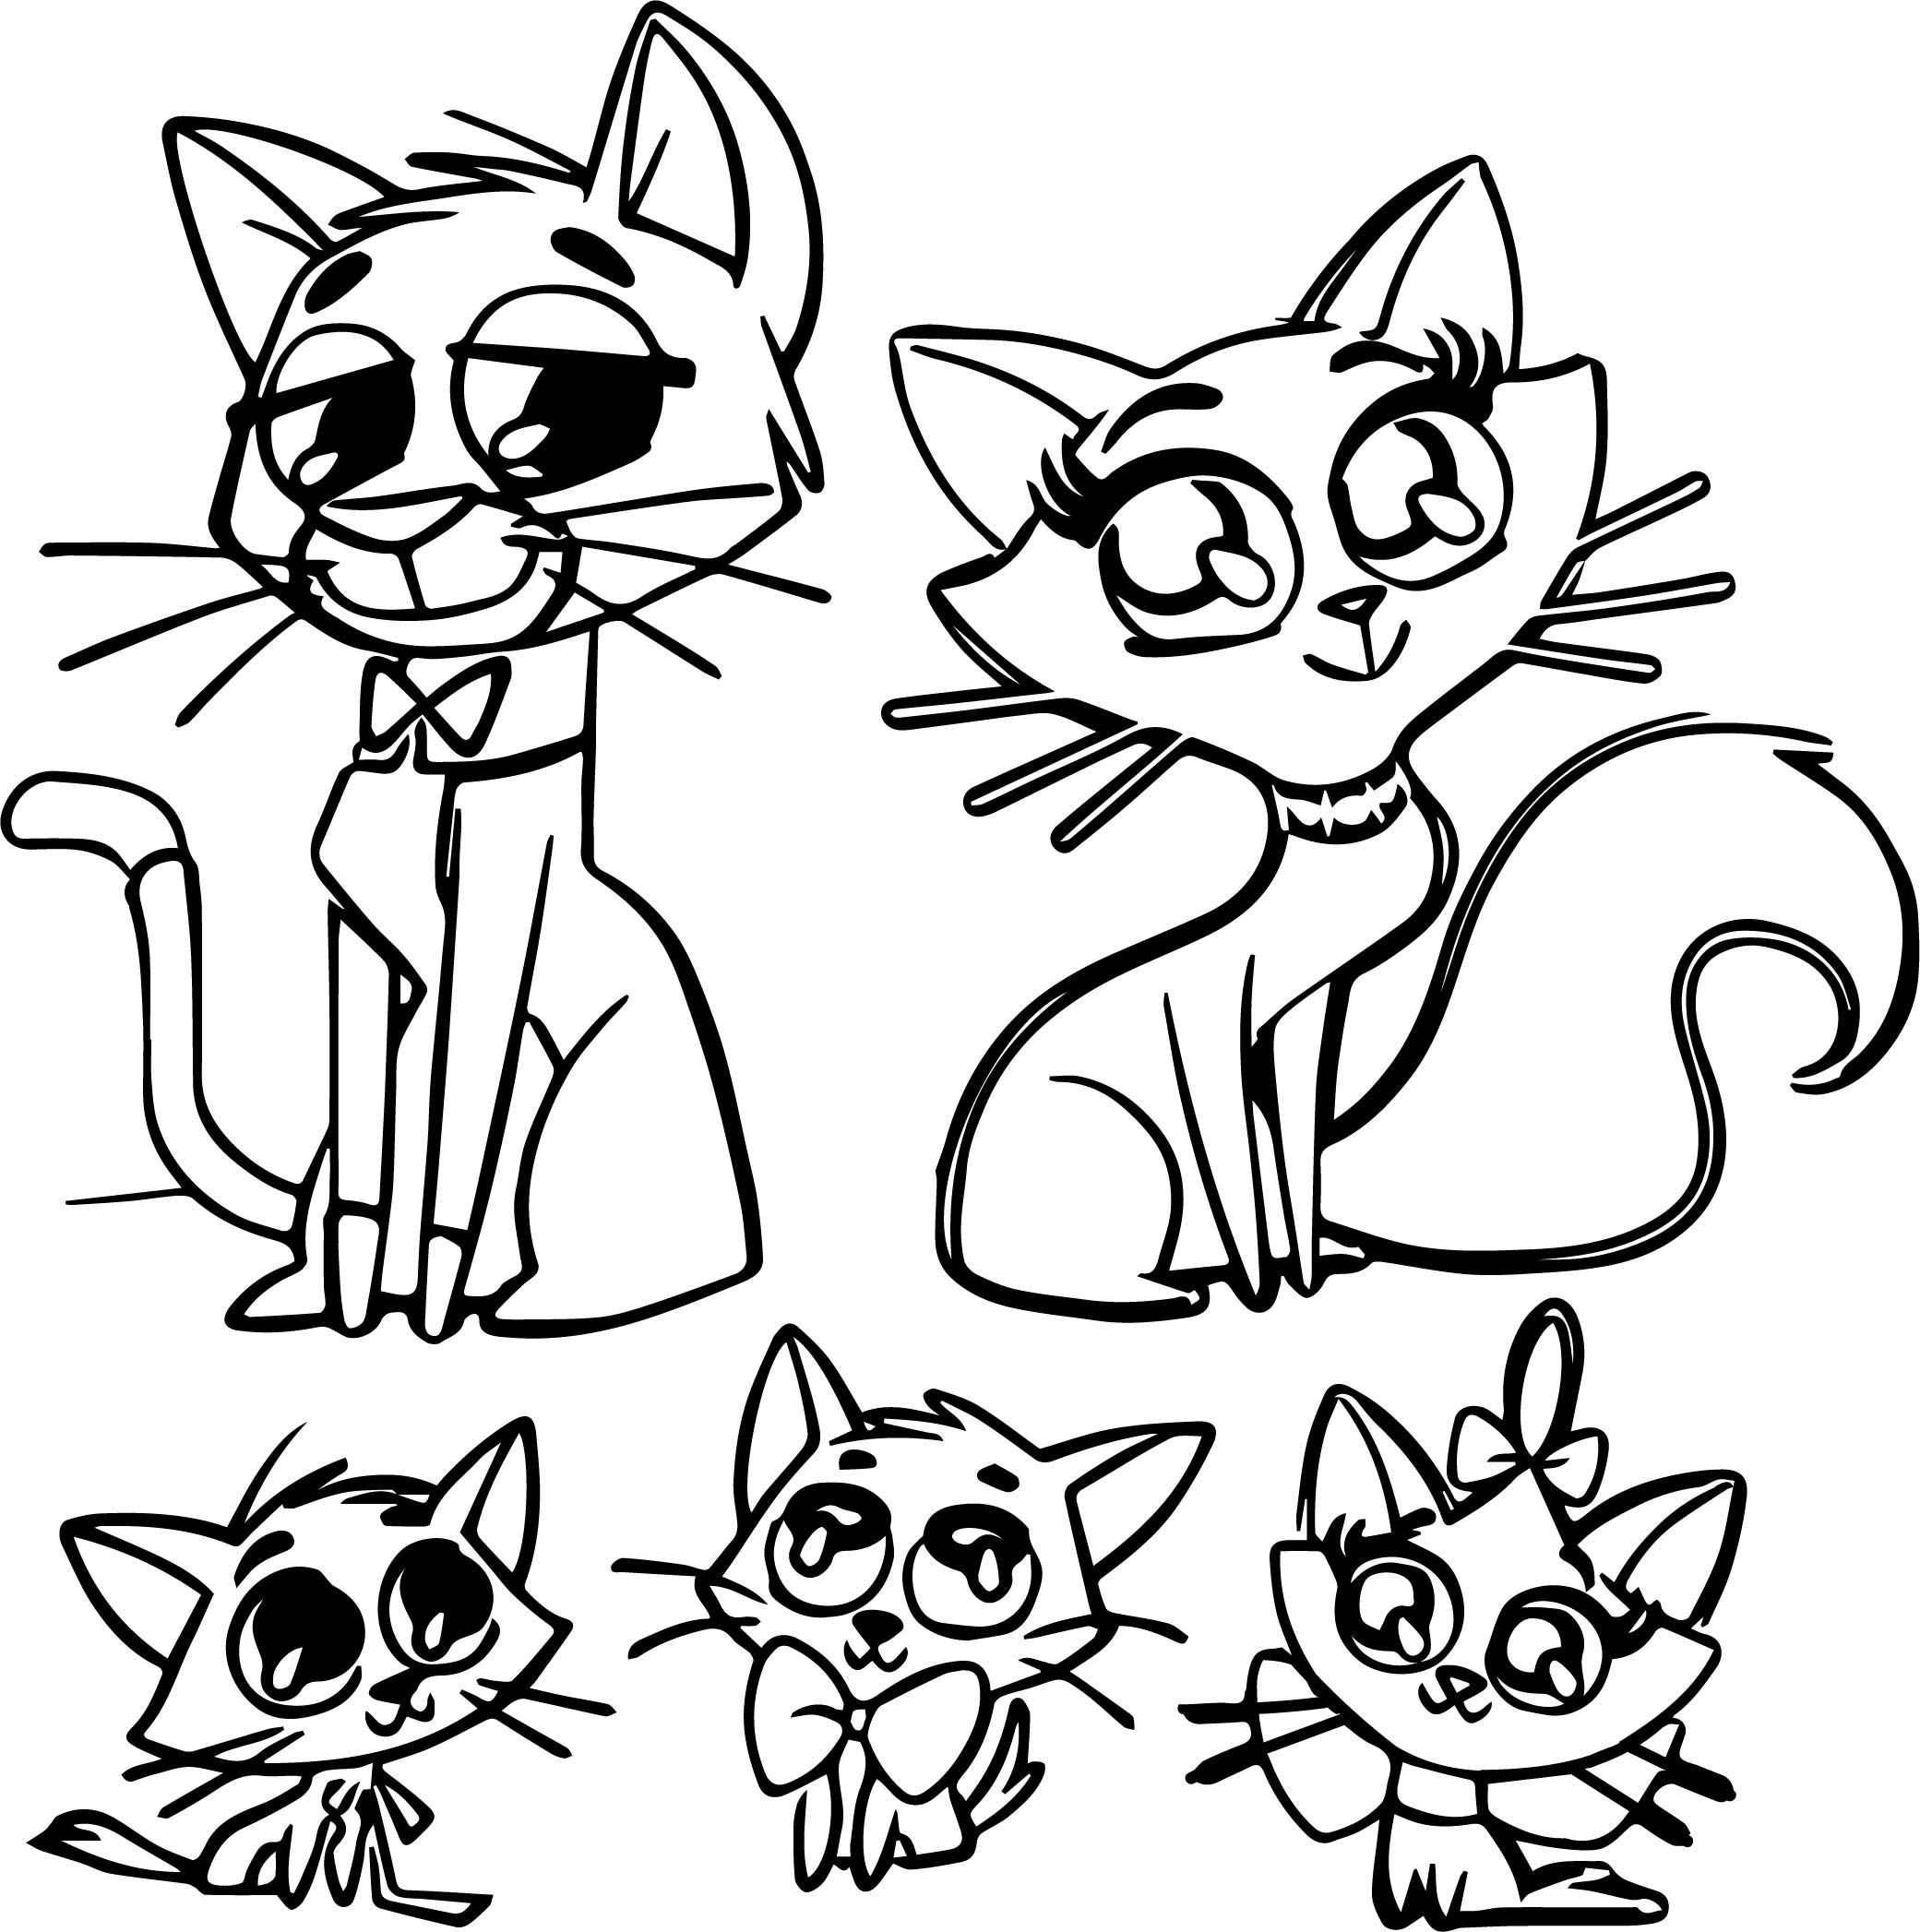 Disney The Aristocats Family Coloring Page